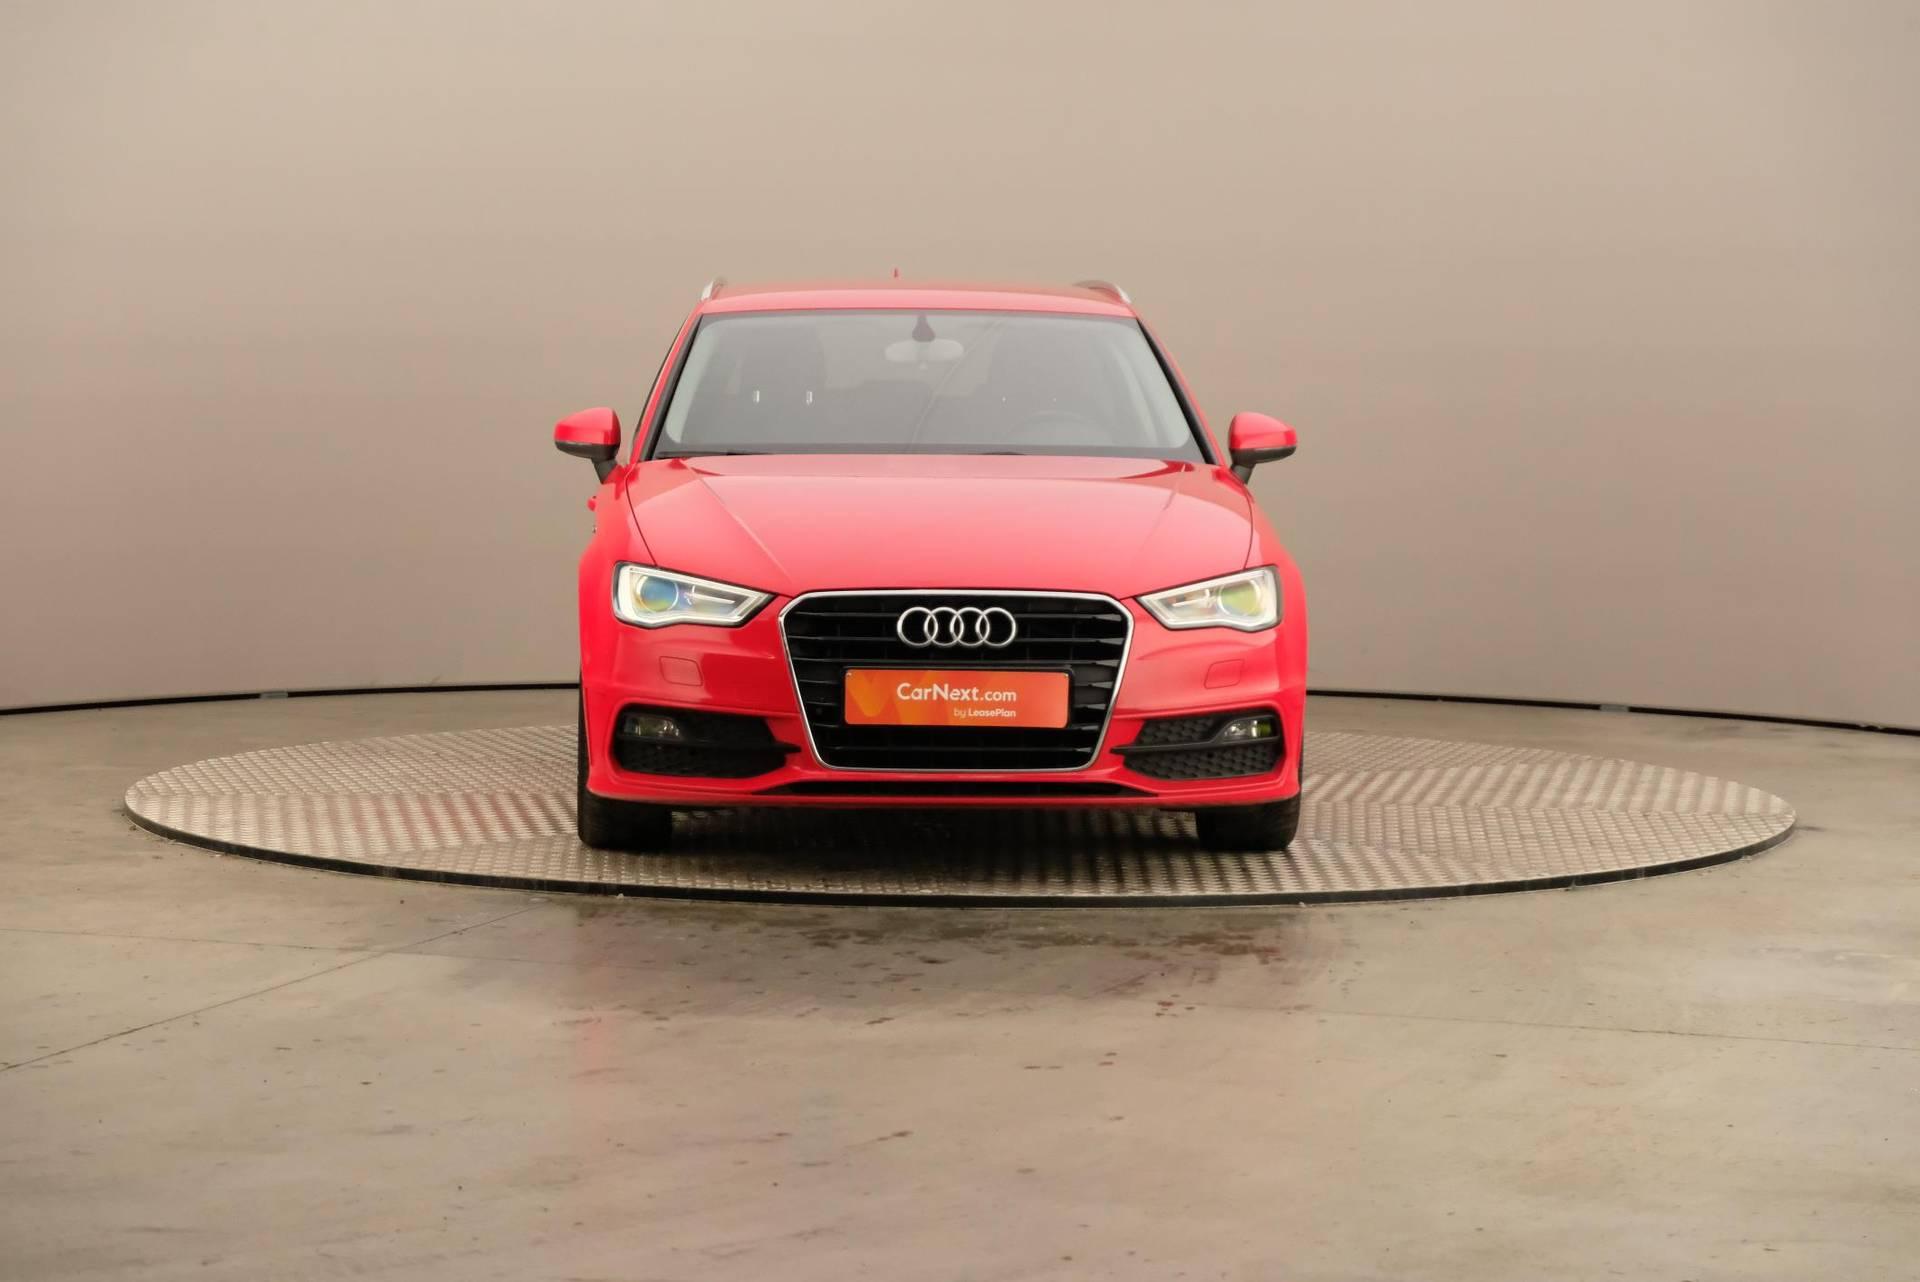 Audi A3 1.6 TDi Ambition PACK SPORT DESIGN XENON GPS PDC CRUISE CONTROL, 360-image31